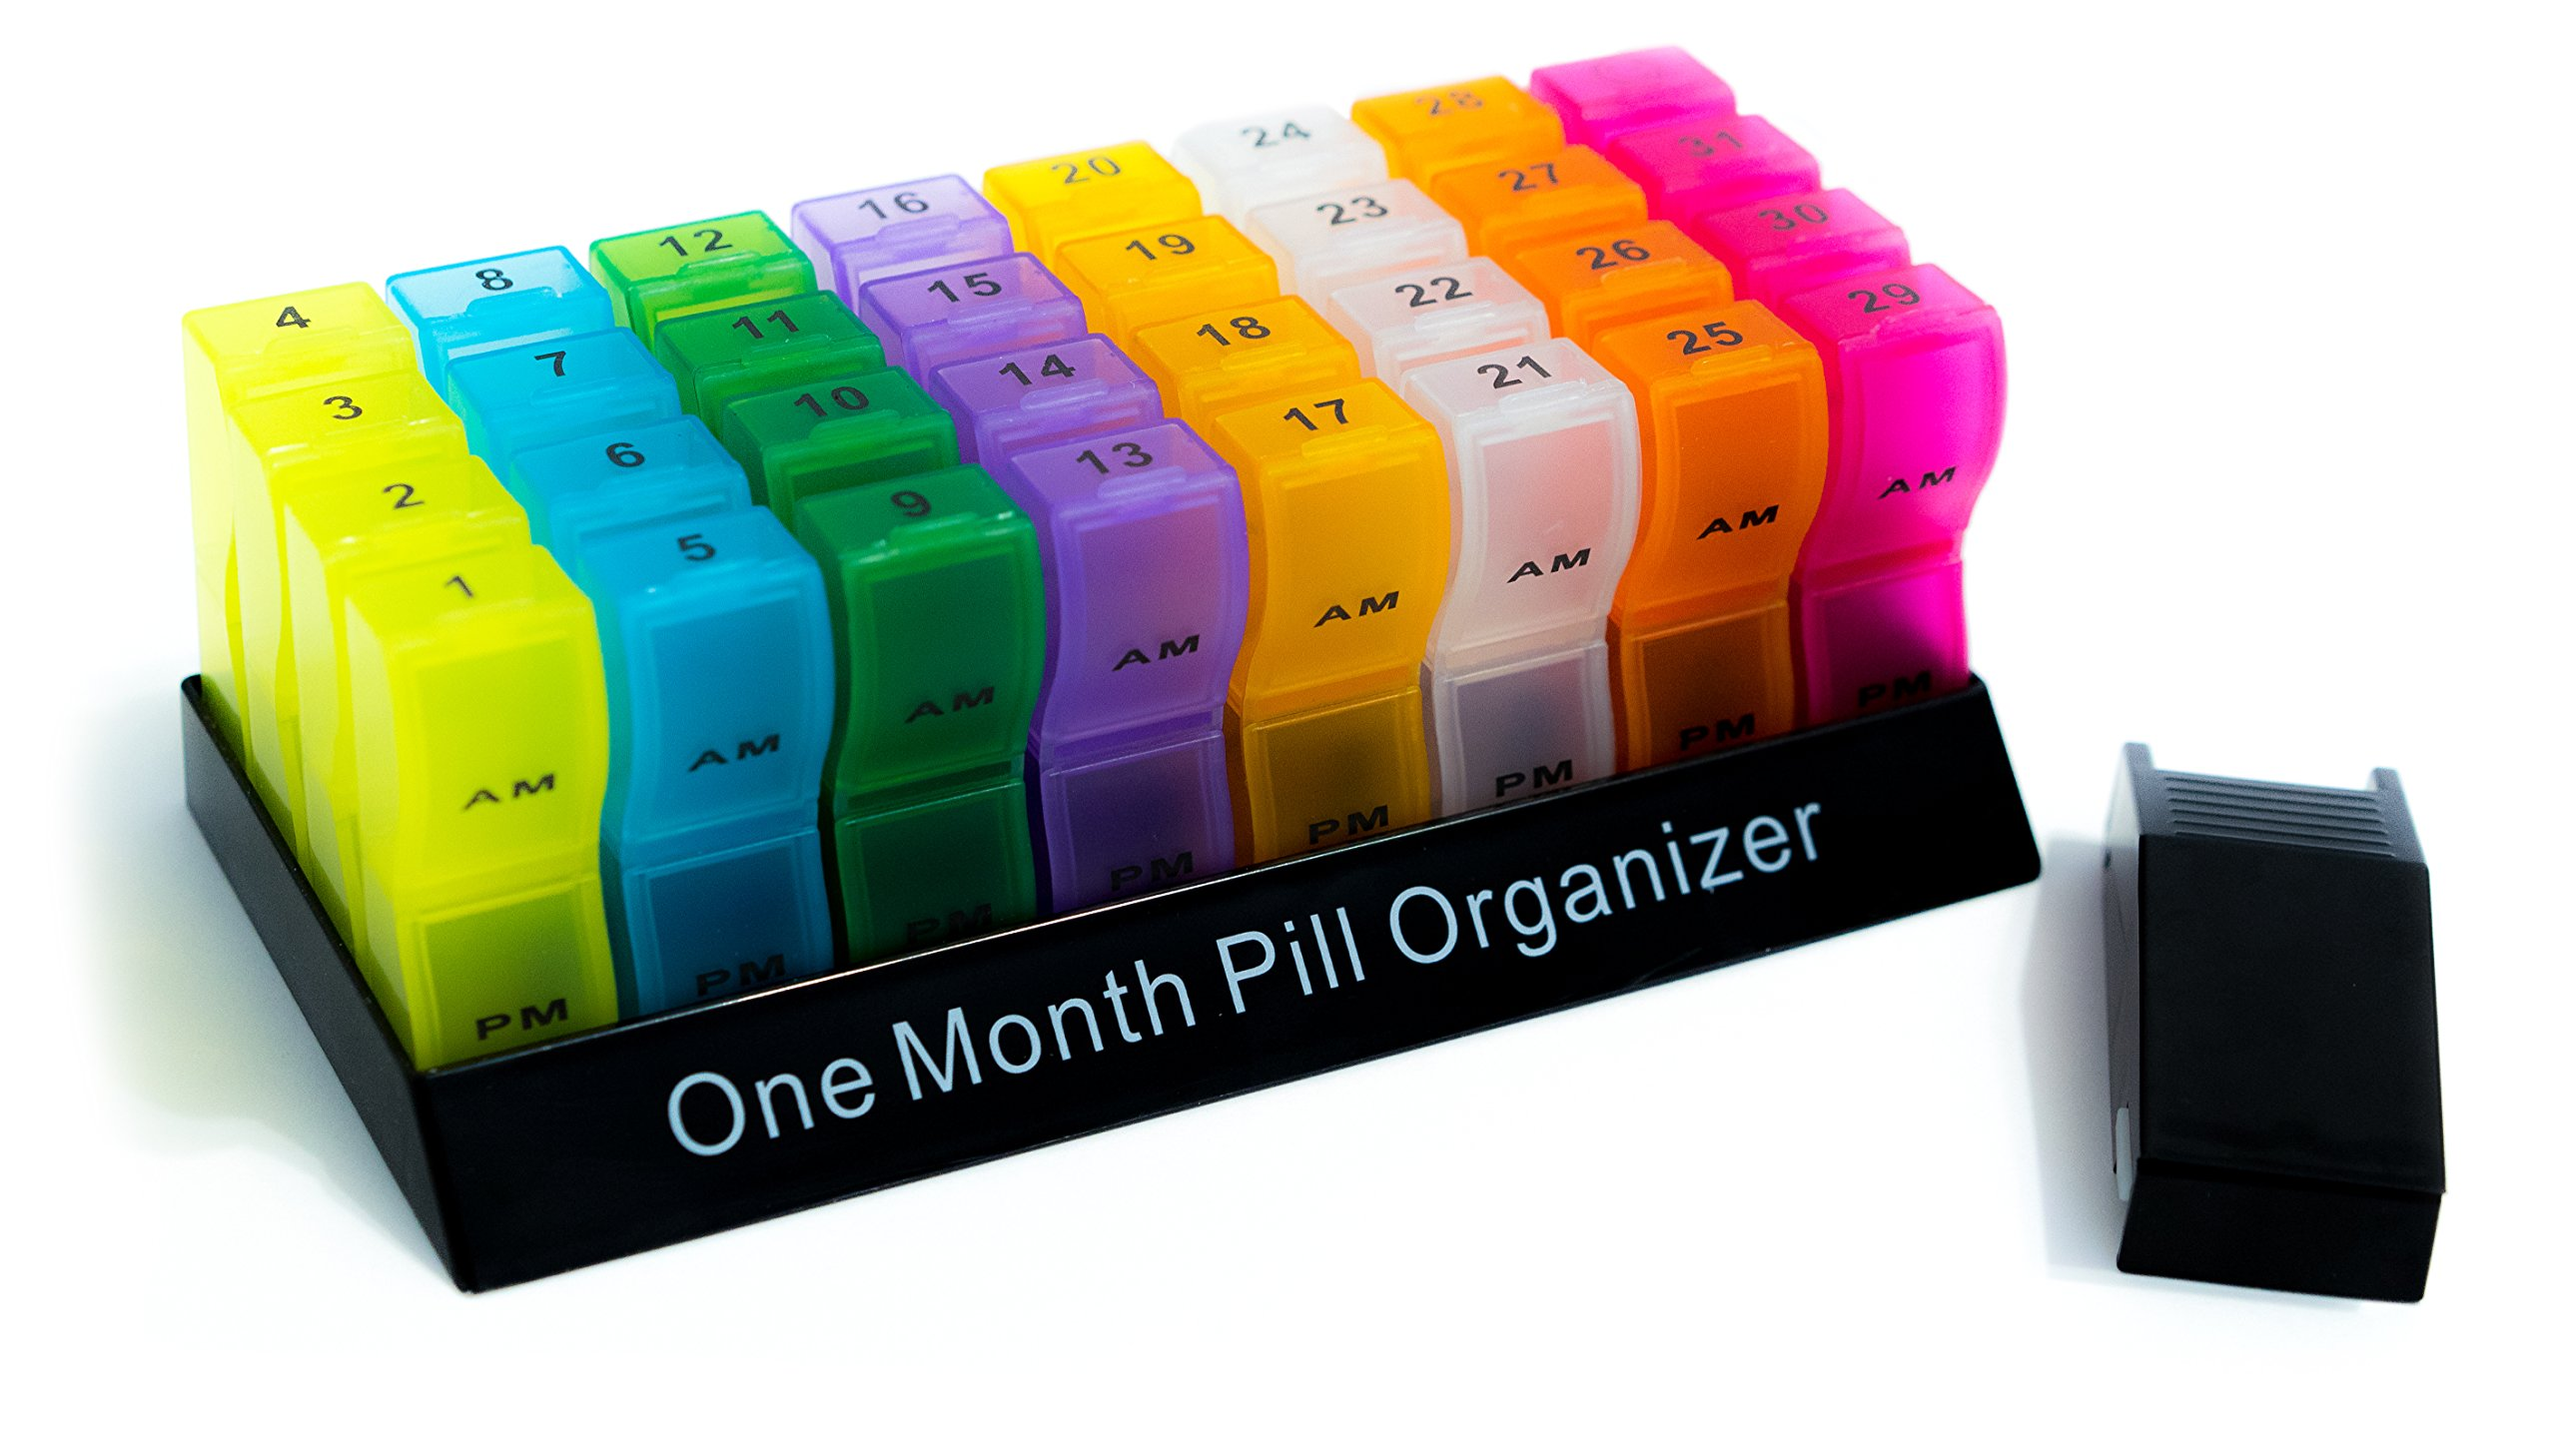 Product Choices Pill Organizer | Pill Box | Pill Case | Premium Quality & Variant Color | Free Pill Cutter | 31 Days AM/PM | Easy Snap-On and Close Lid | BPA Free | Recyclable | Large Compartments by Product Choices